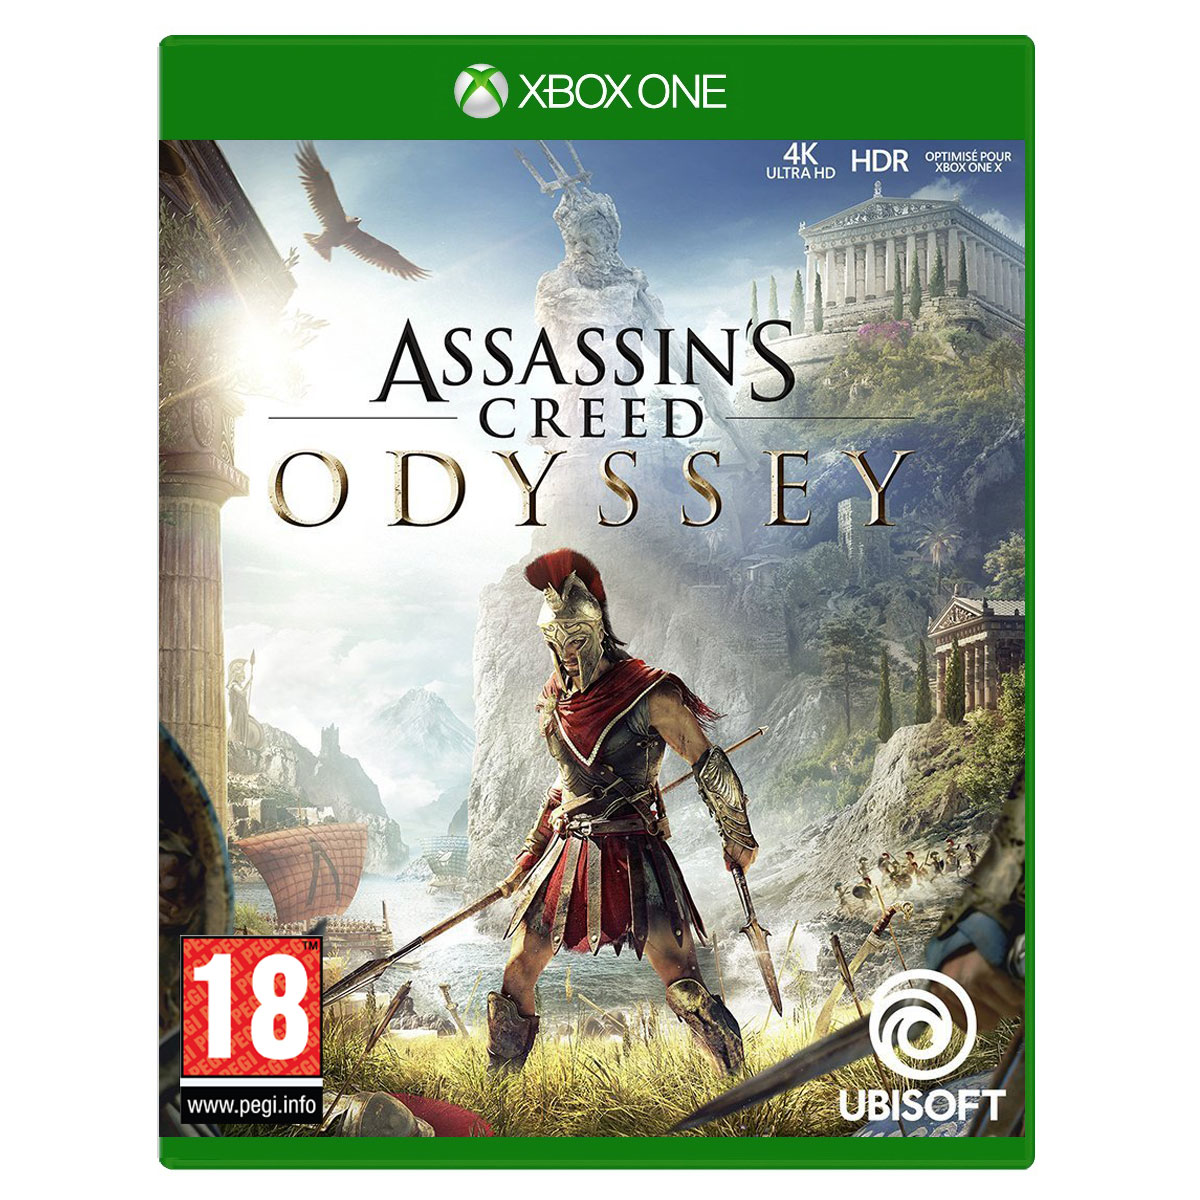 Jeux Xbox One Assassin's Creed Odyssey (Xbox One) Assassin's Creed Odyssey (Xbox One)